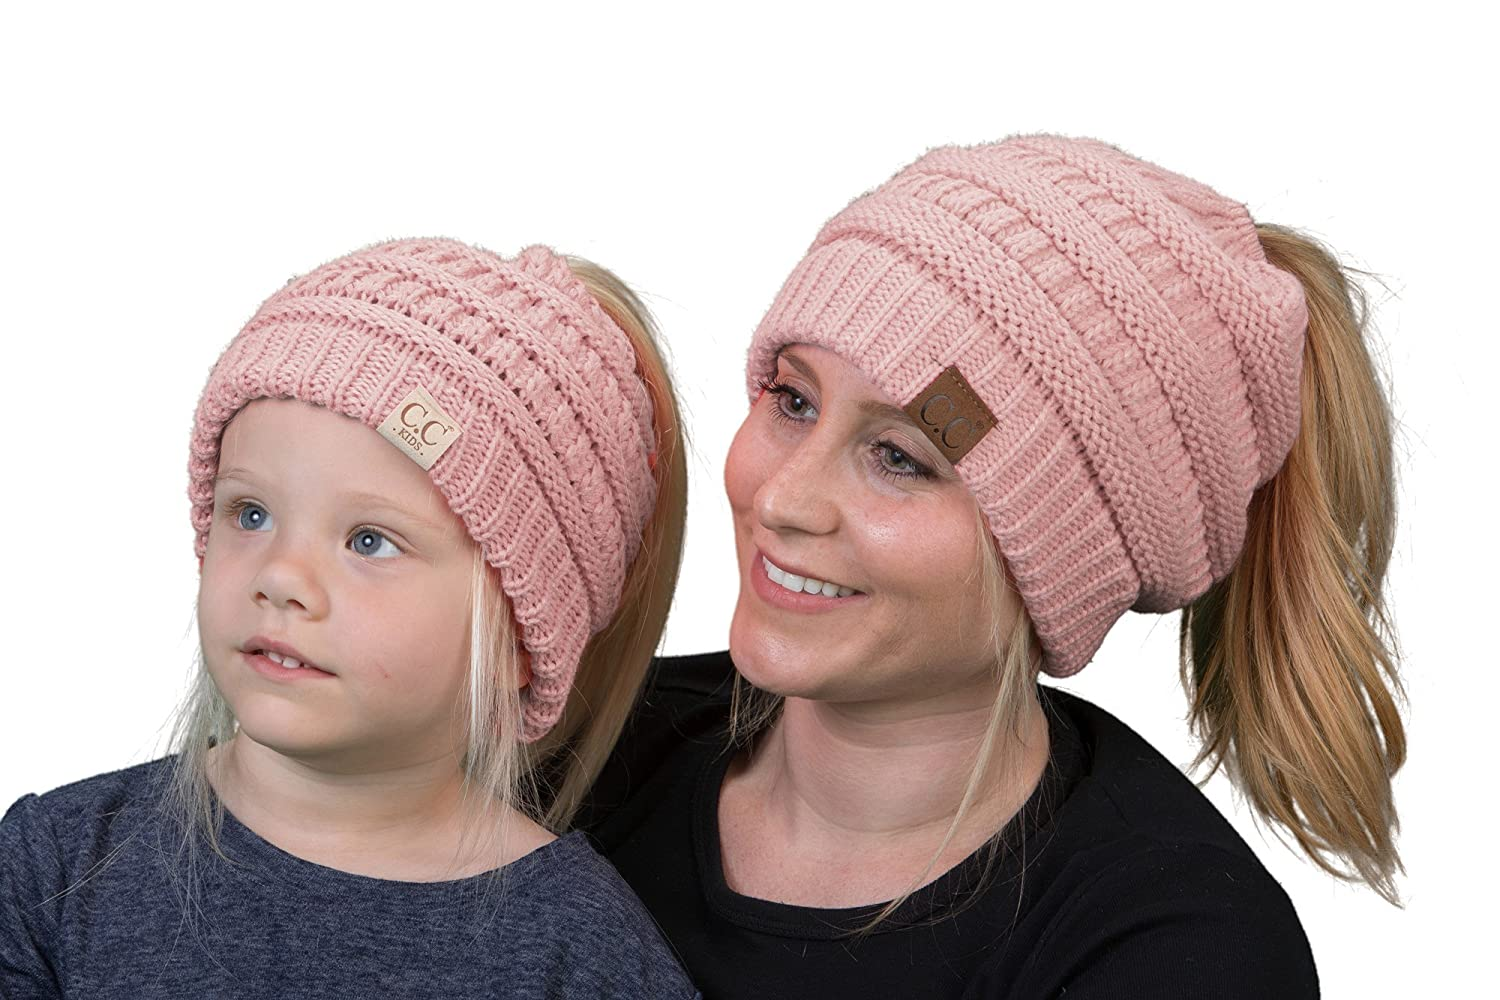 C.C Matching Womens & Girls/Boys BeanieTail Ponytail Messy Bun Beanie Bundle gWBT.KBT-6800-816.0641-FJ